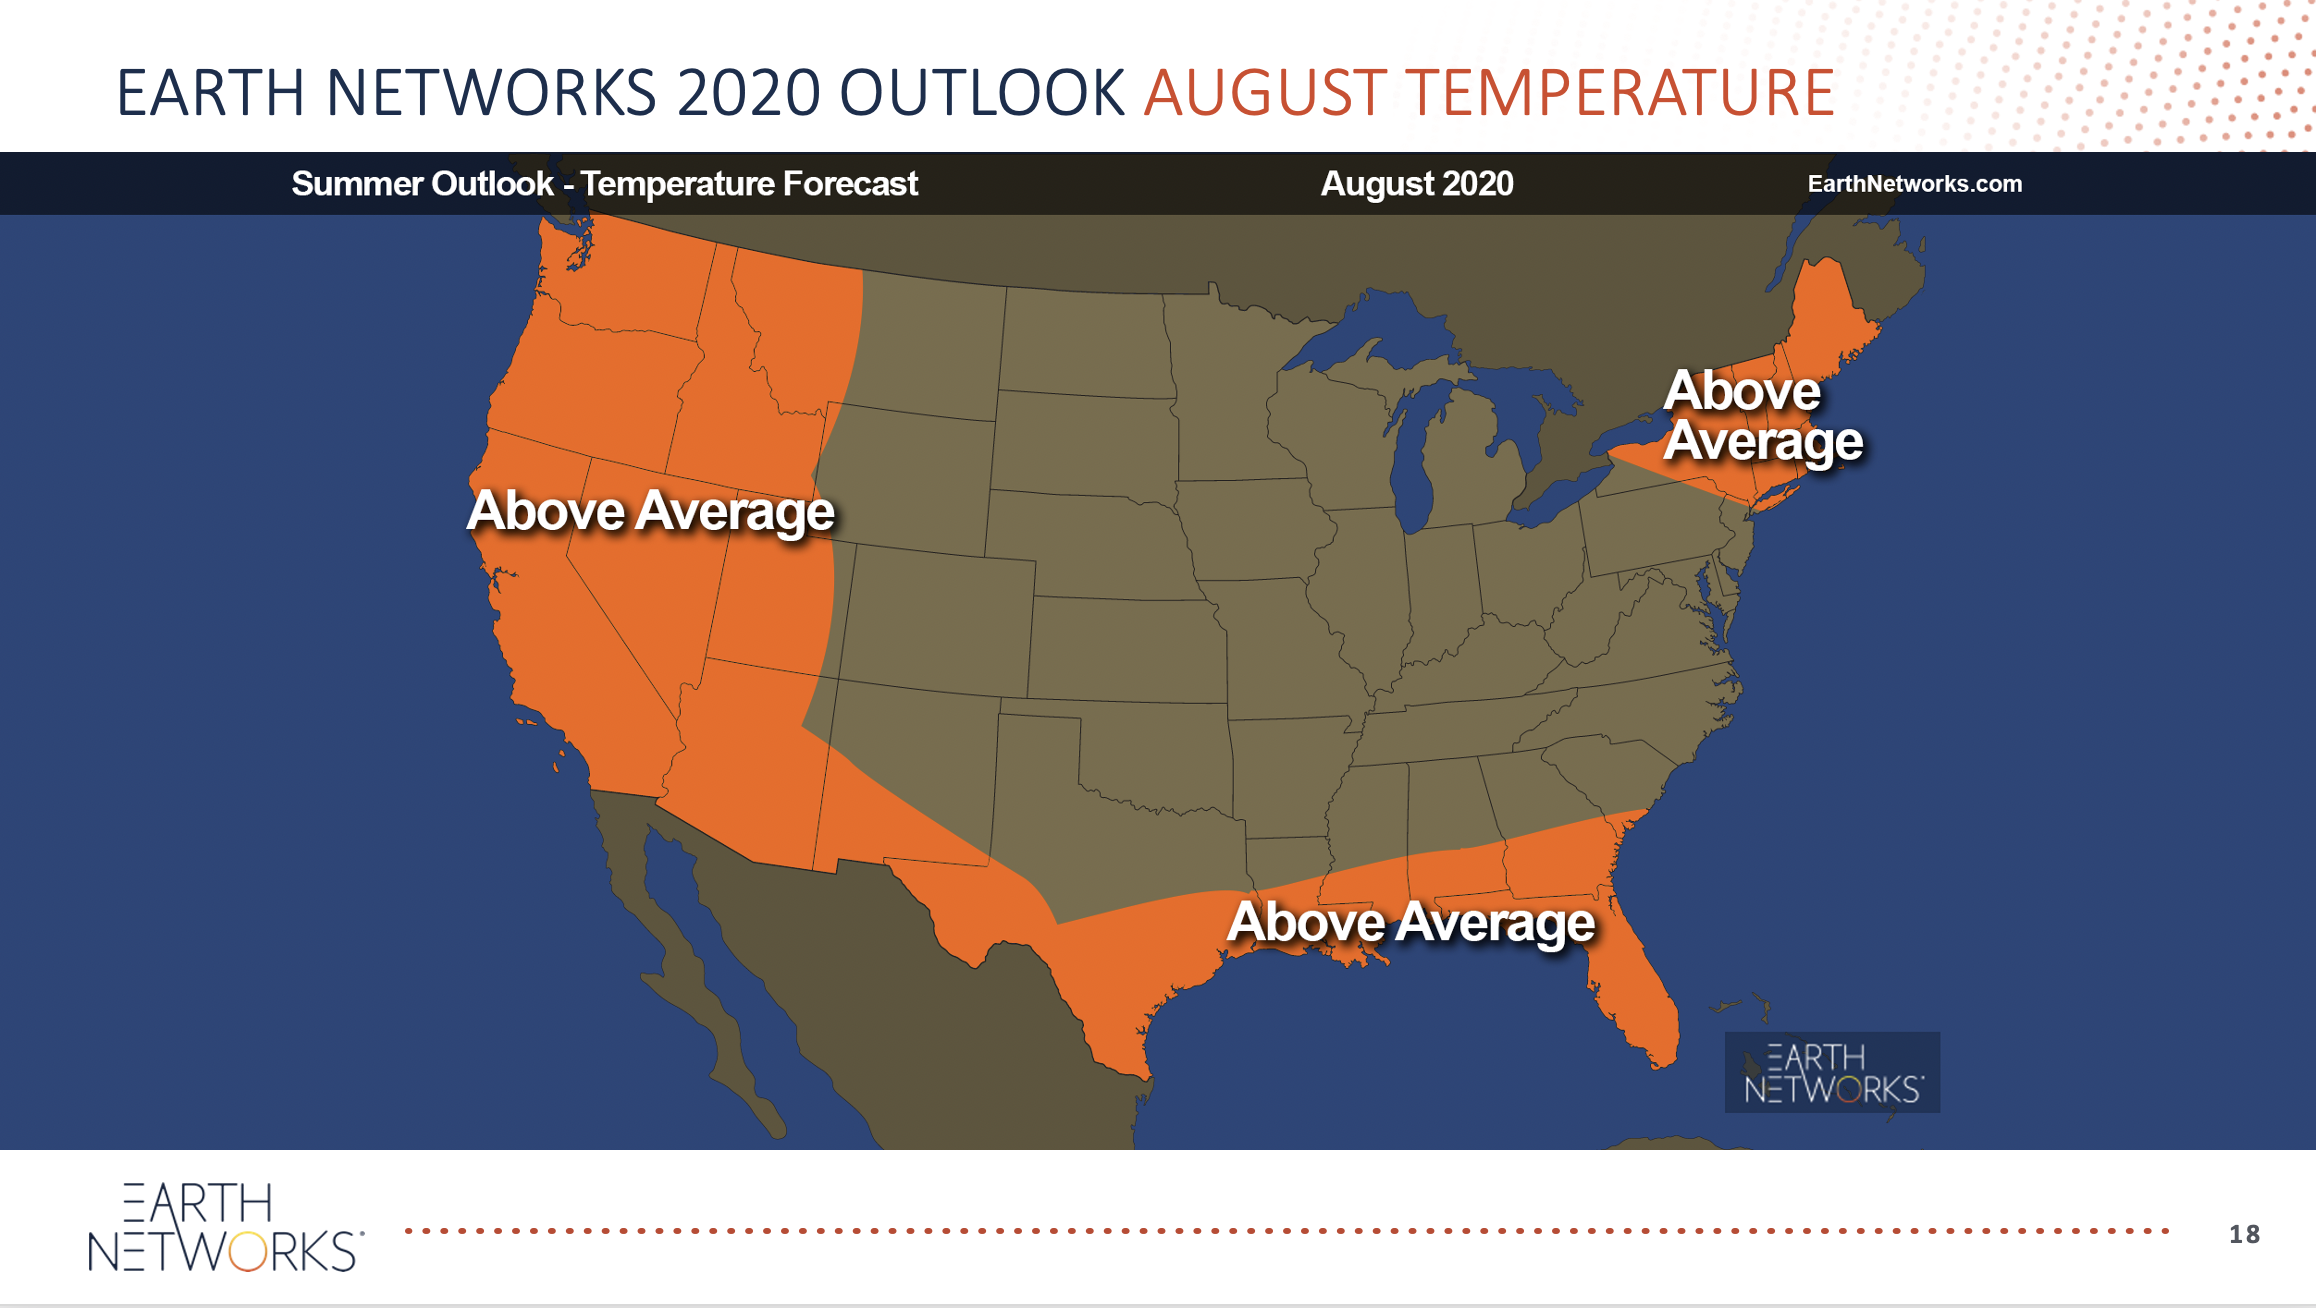 August extreme temperatures 2020 summer outlook webinar